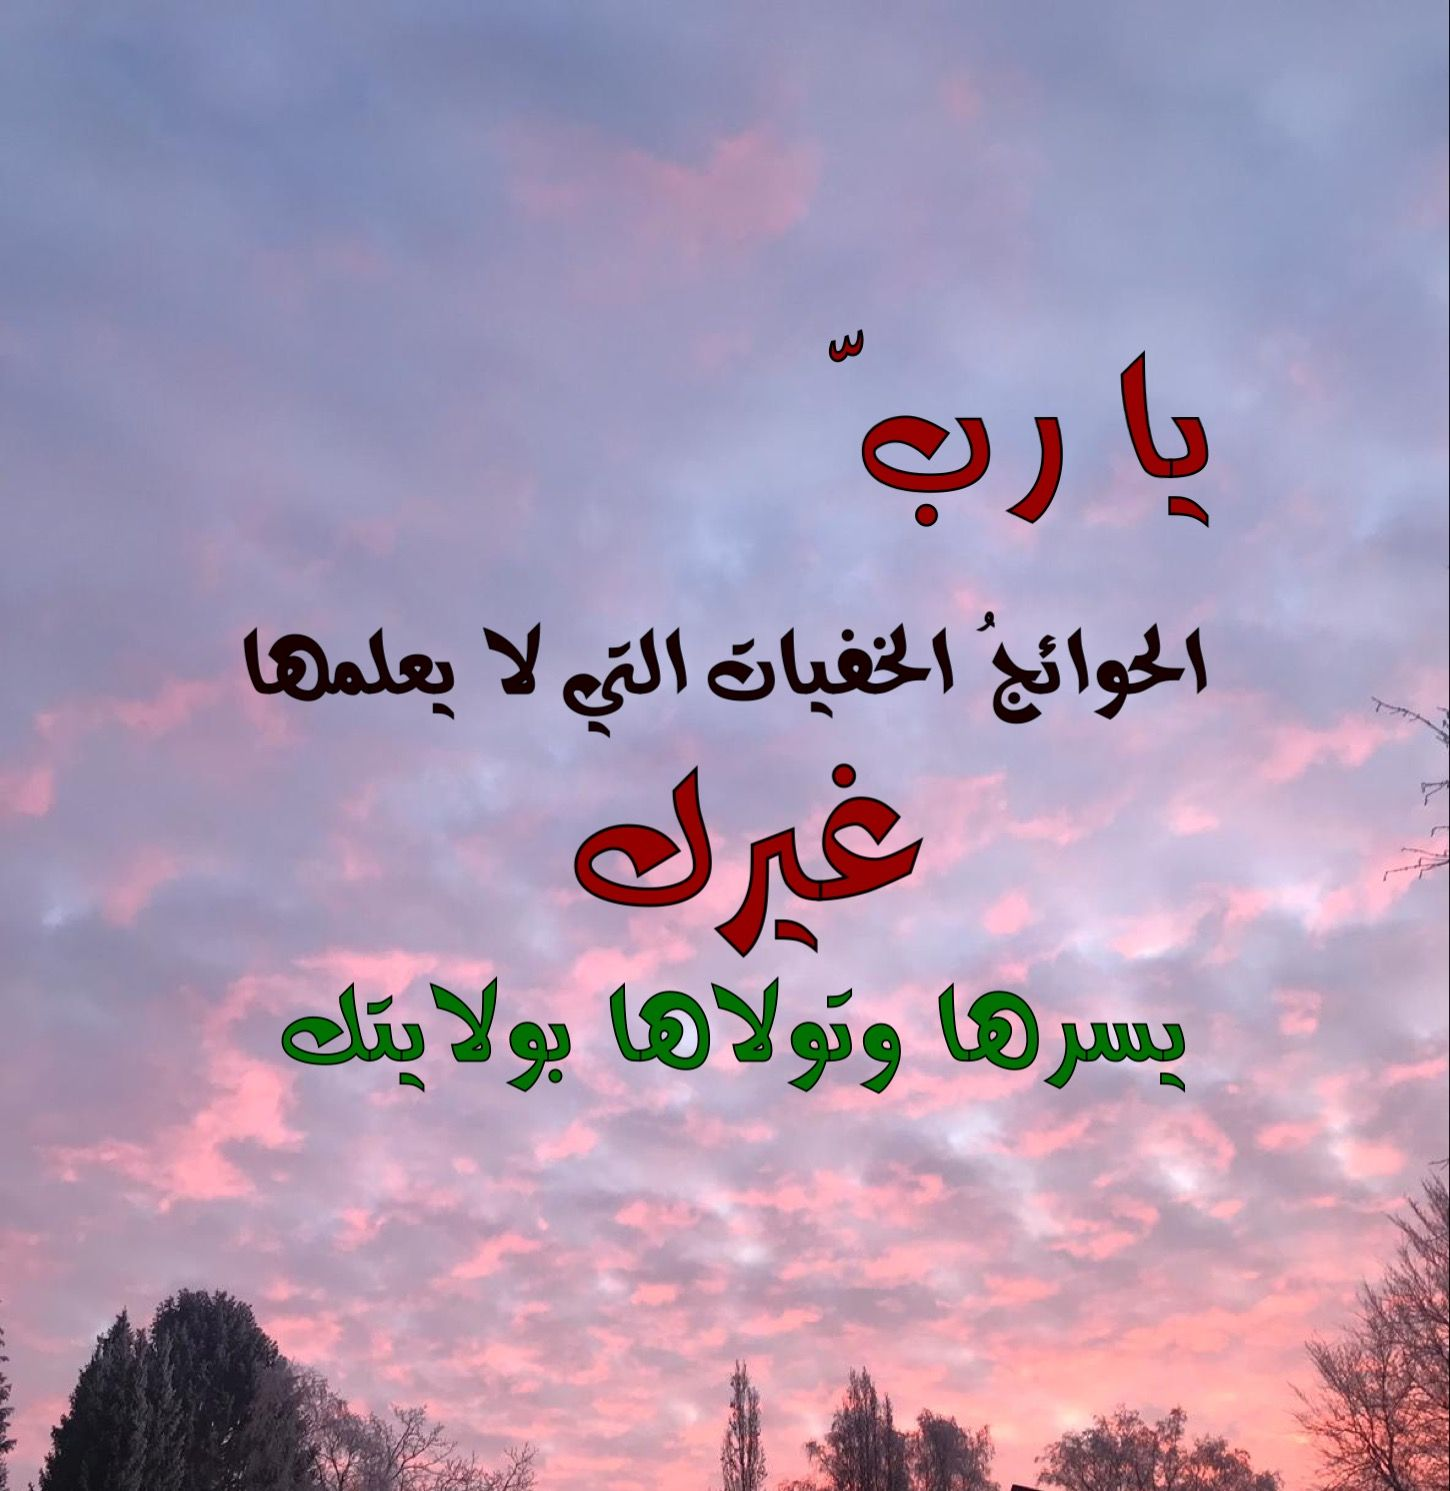 Pin By On دعاء Quotations Arabic Words Islamic Pictures